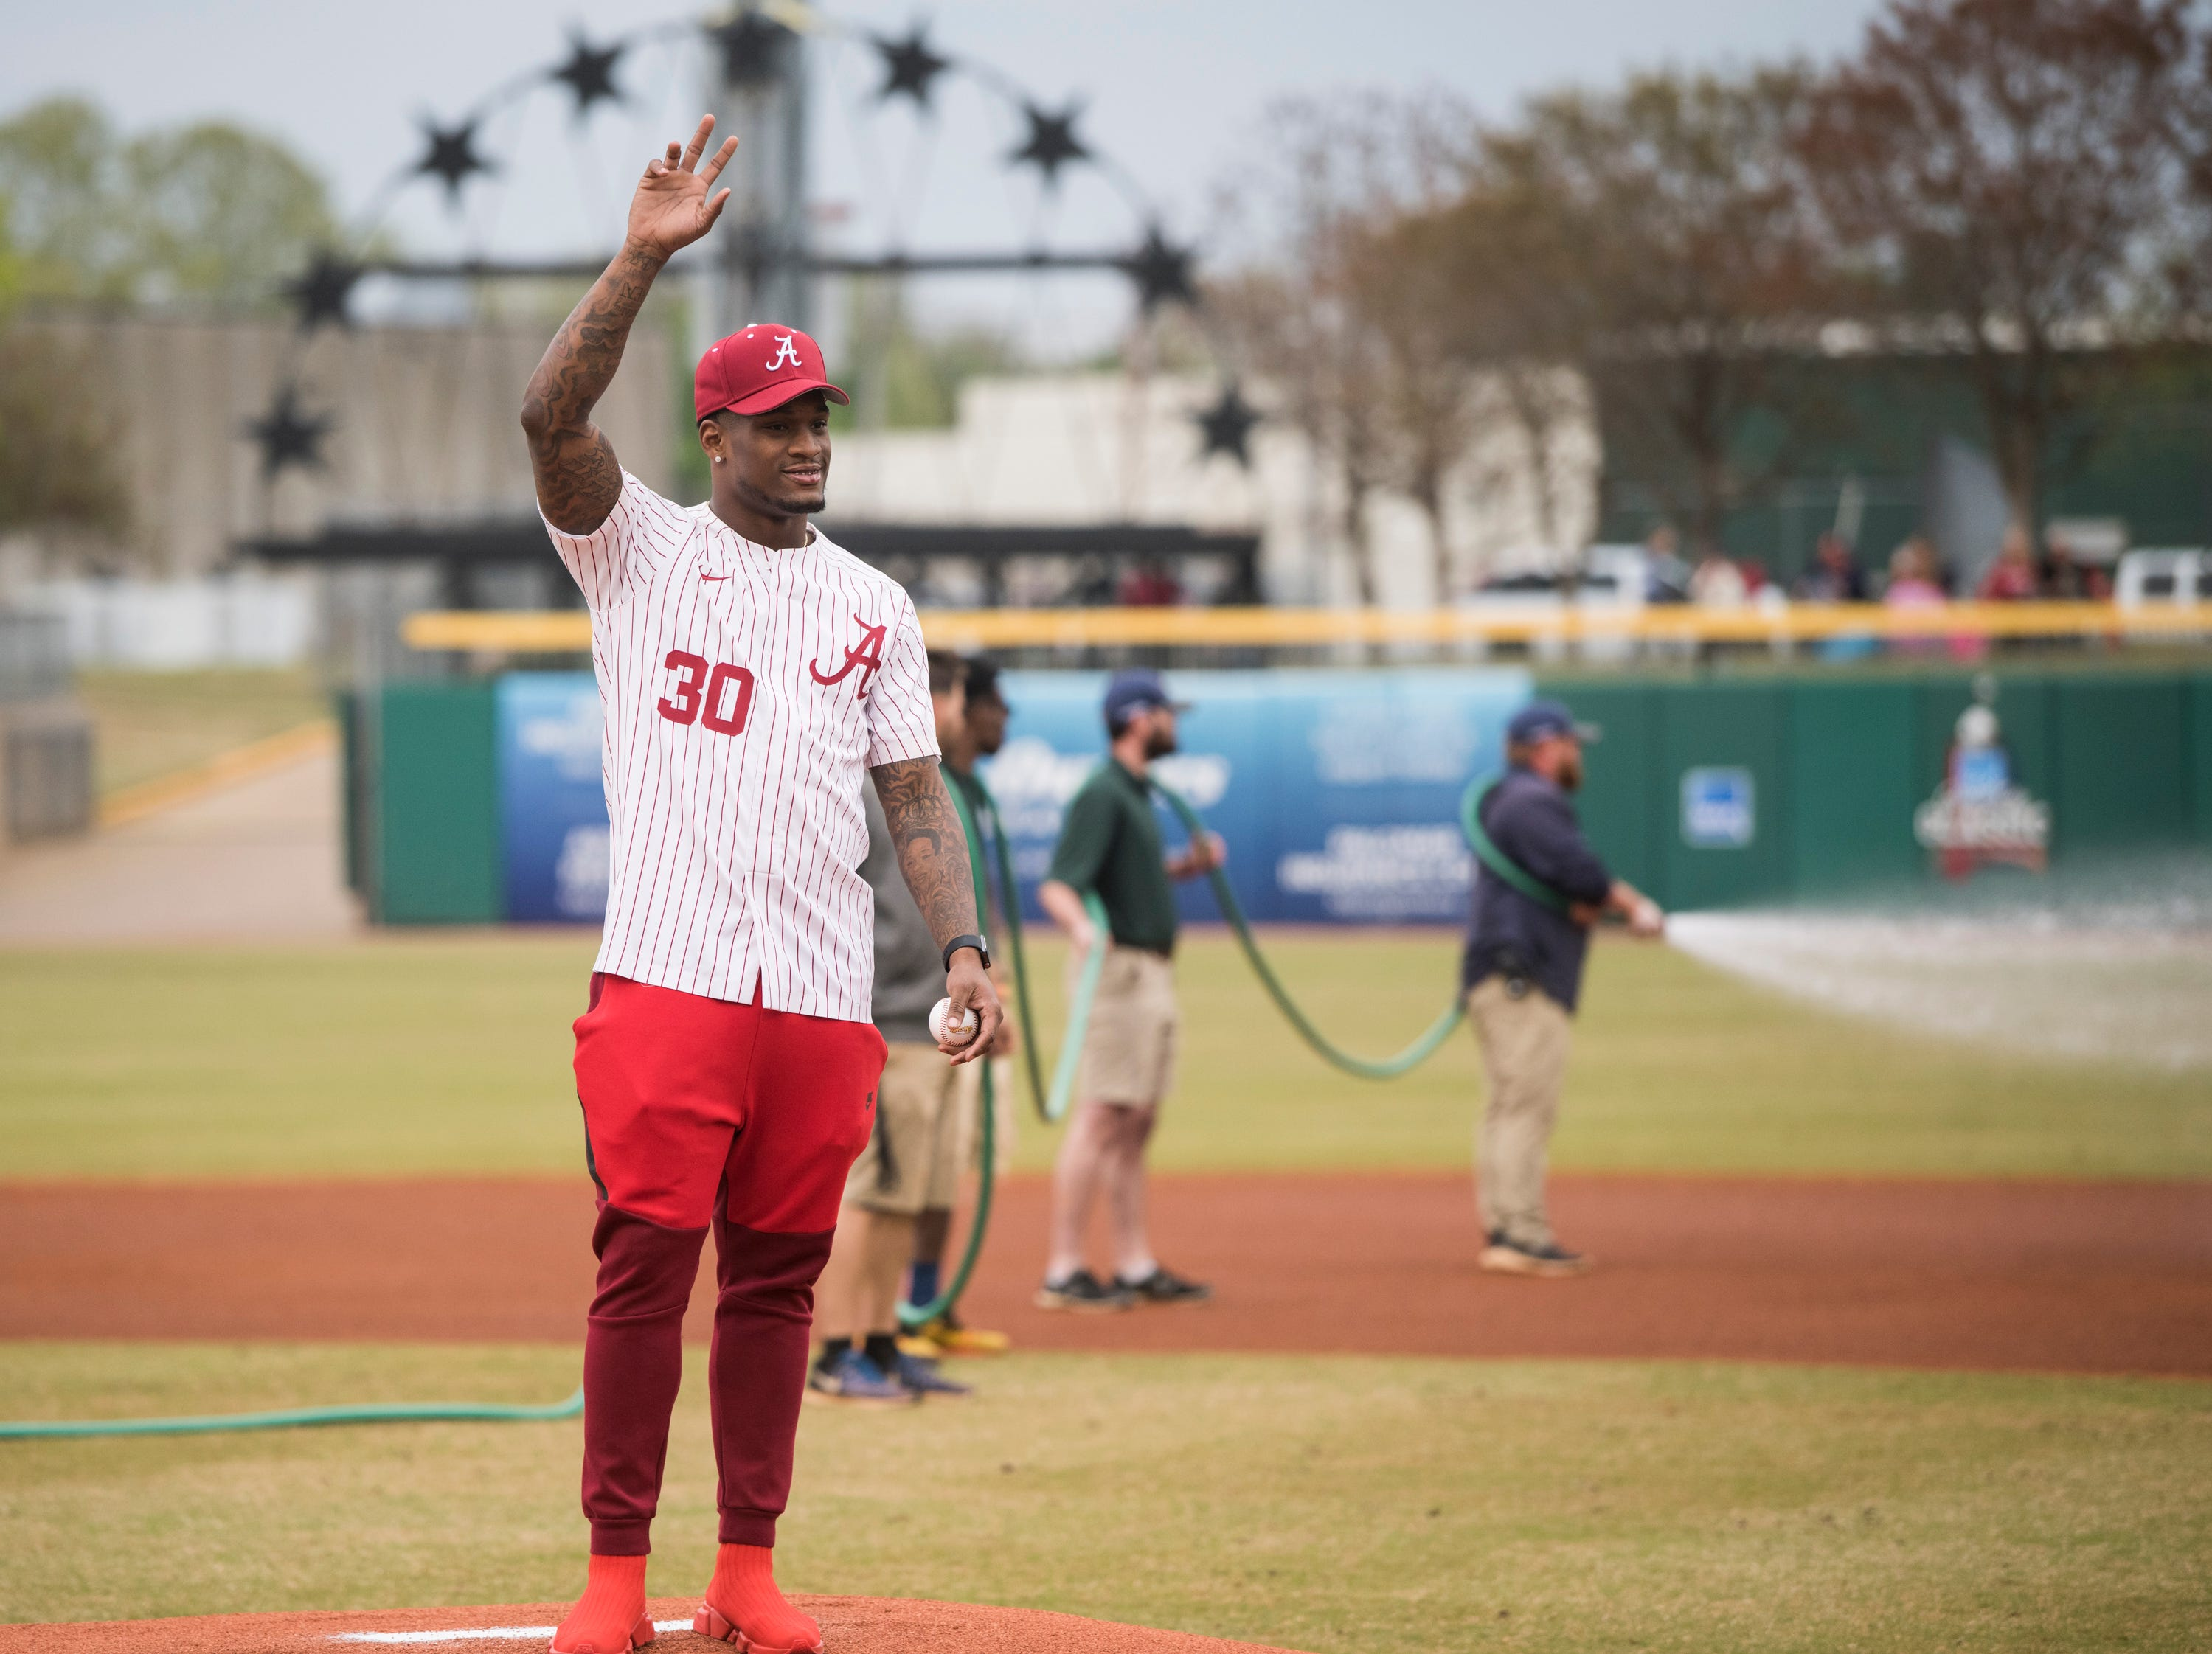 former Alabama linebacker Mack Wilson acknowledges the crowd before throwing out the first pitch during the Auburn-Alabama Capital City Classic at Riverfront Park in Montgomery, Ala., on Tuesday, March 26, 2019.